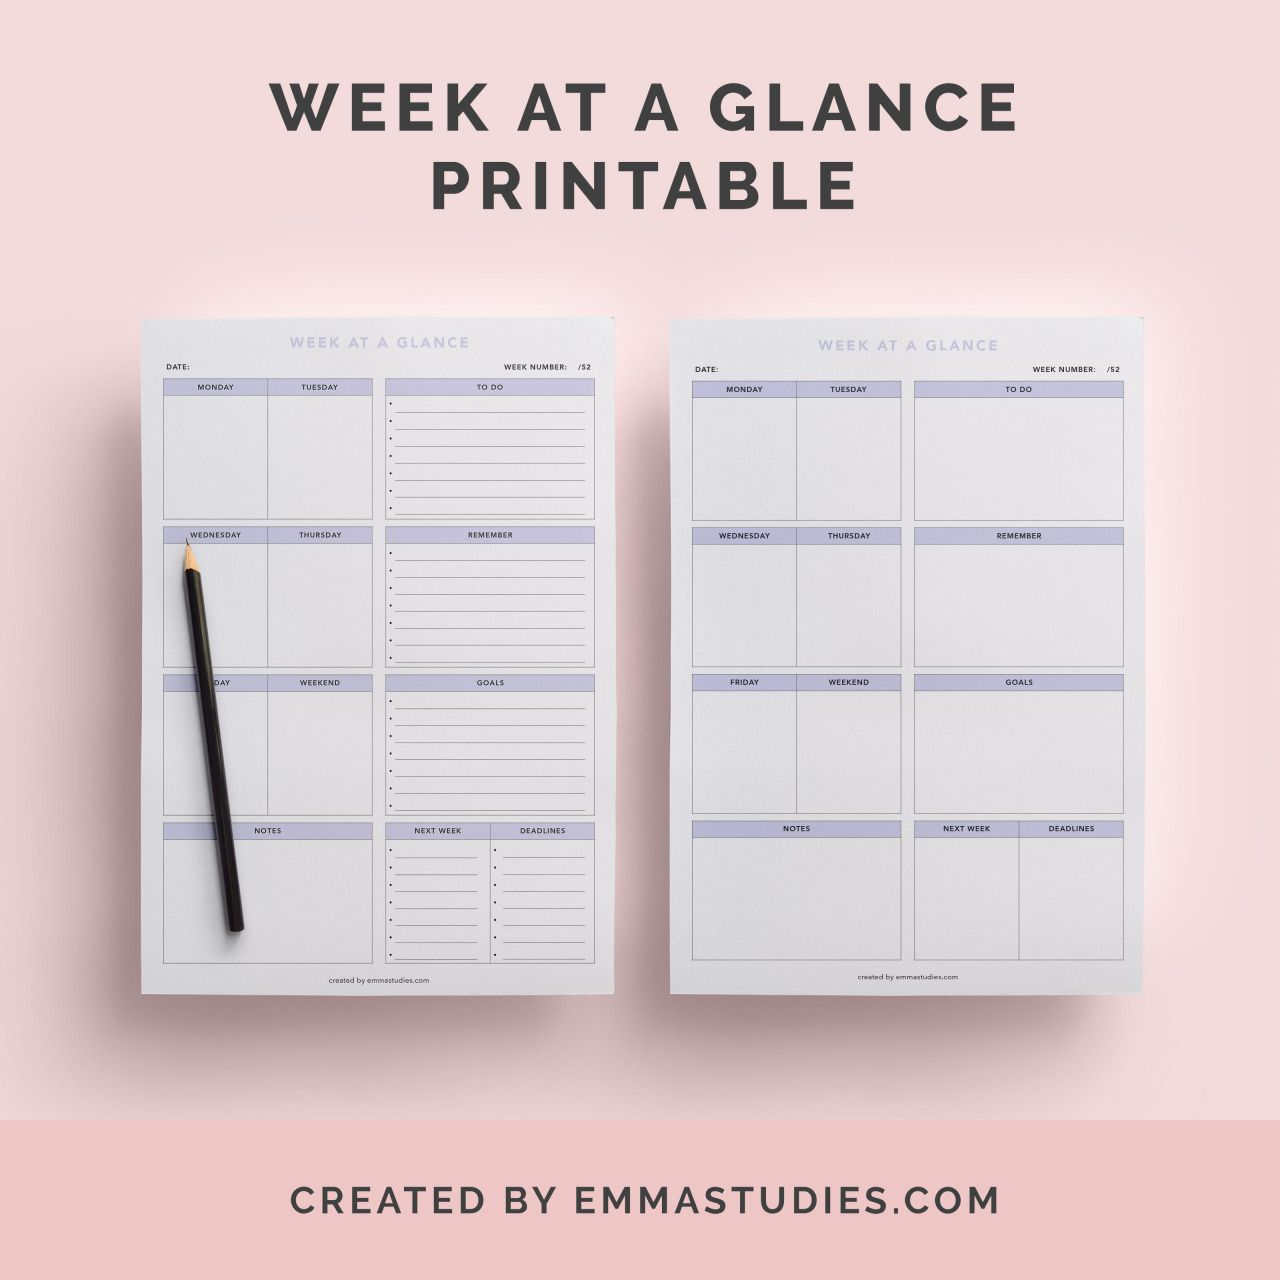 week at a glance weekly schedule free printable for download from emmastudies the studyblr. Black Bedroom Furniture Sets. Home Design Ideas